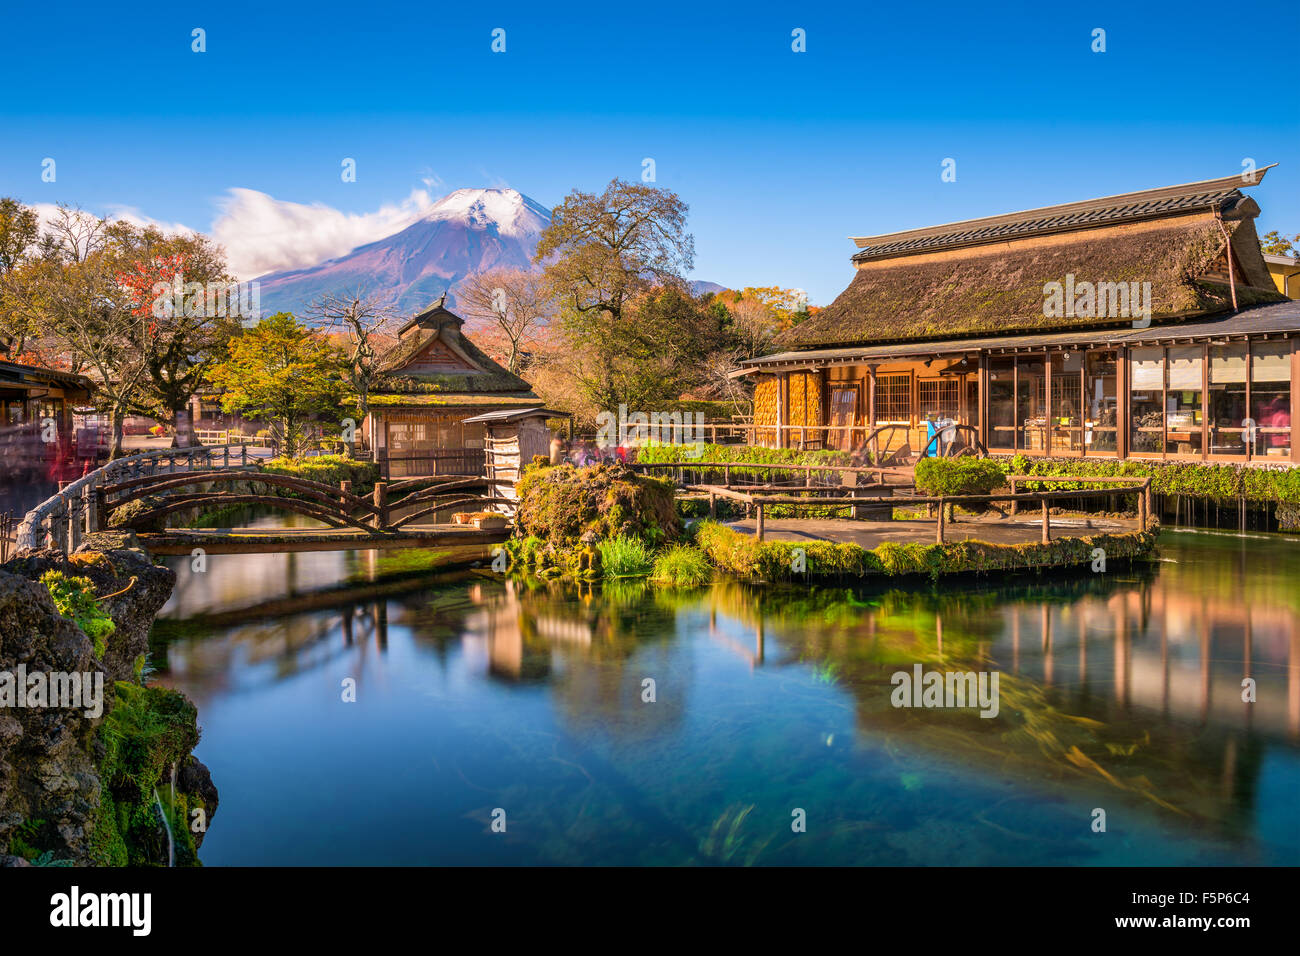 Mt. Fuji, Japan from Oshi no Hakkai lakes district. - Stock Image